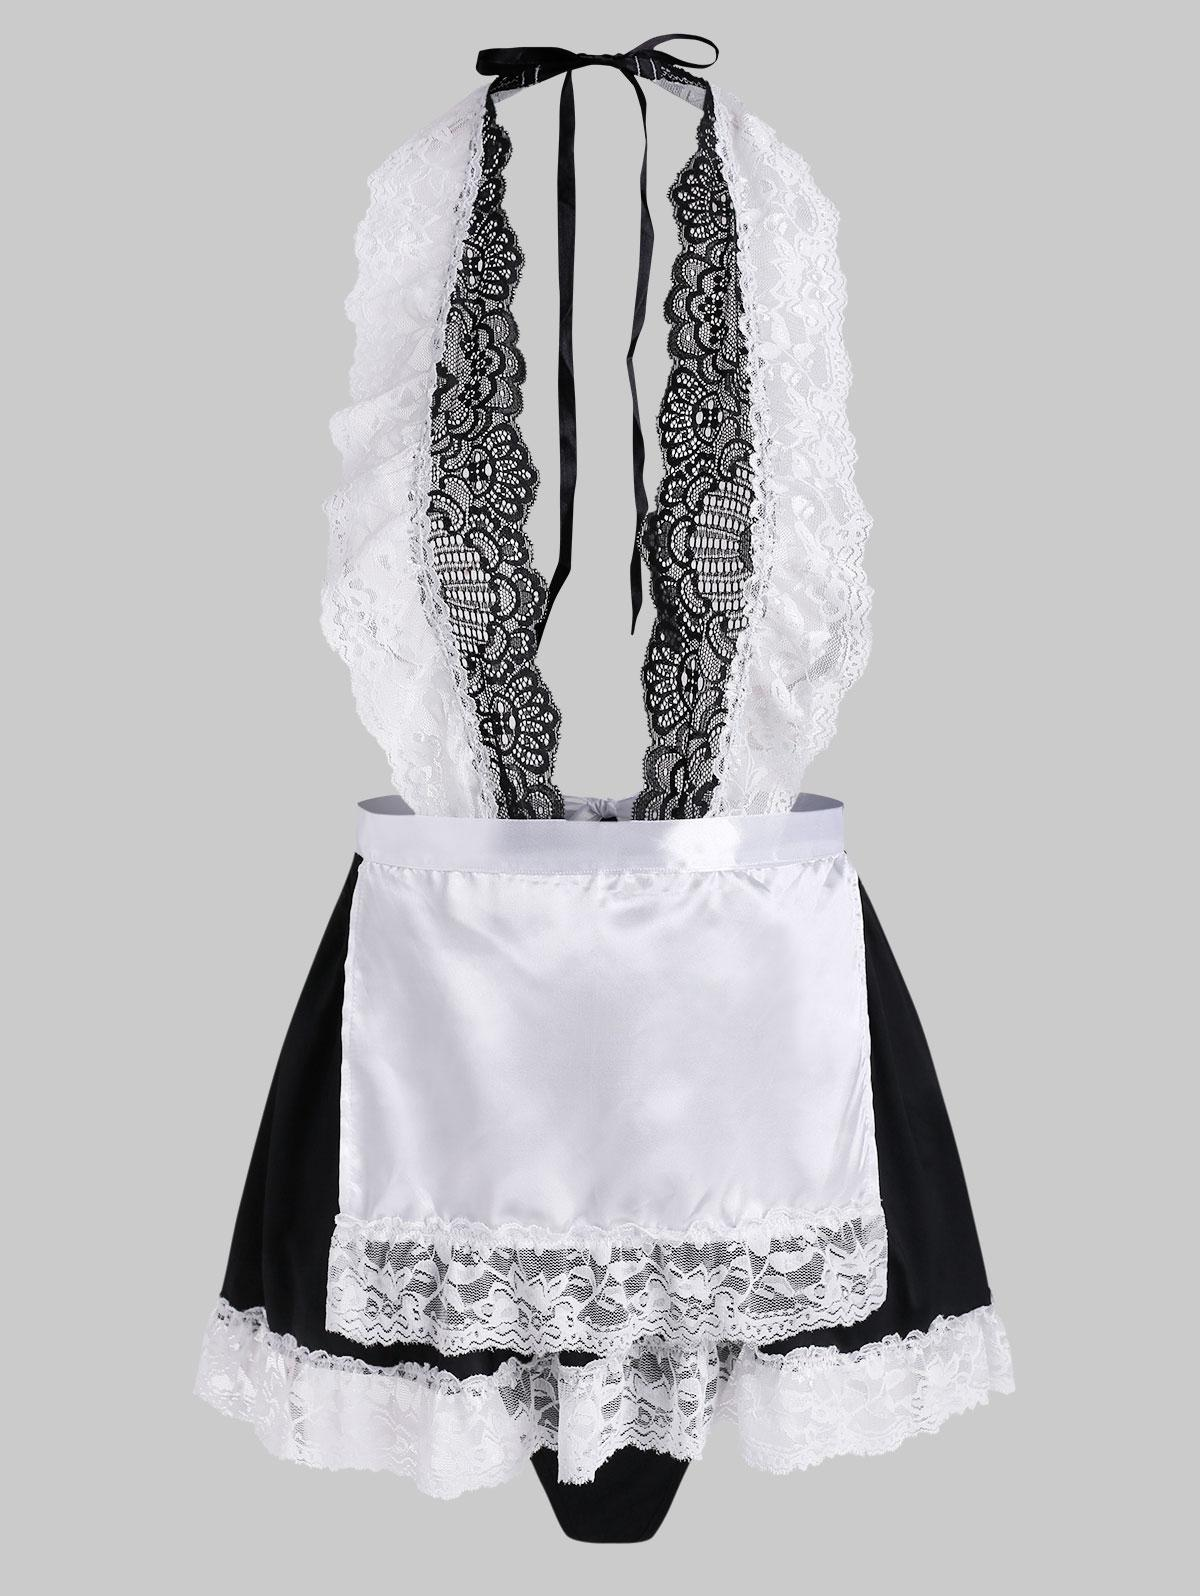 Lace Panel Backless Housemaid Apron Lingerie Set